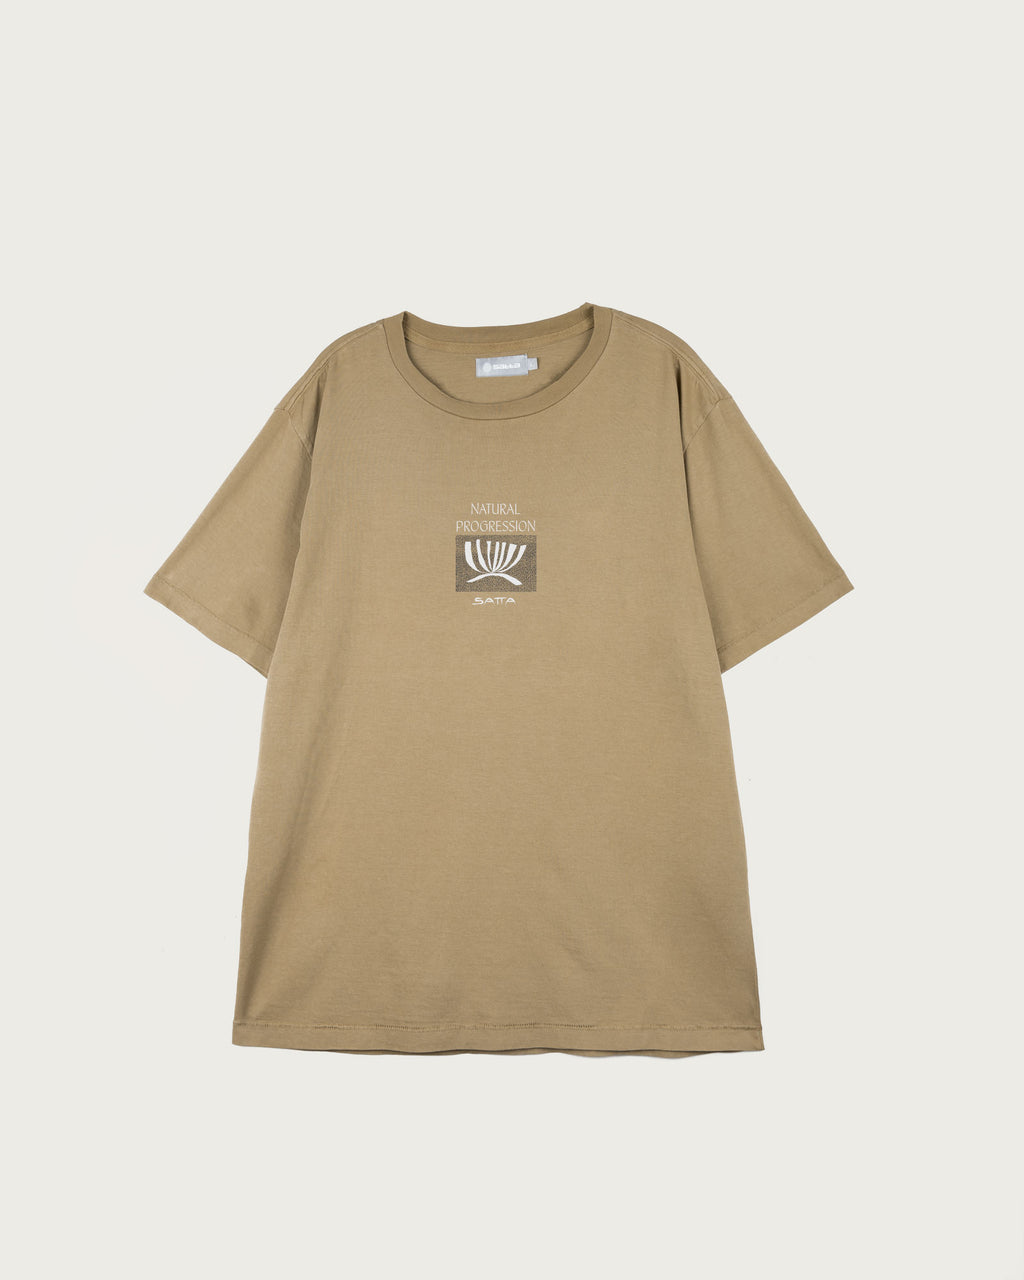 Satta Natural Progression Tee - Bushweed | SATTA